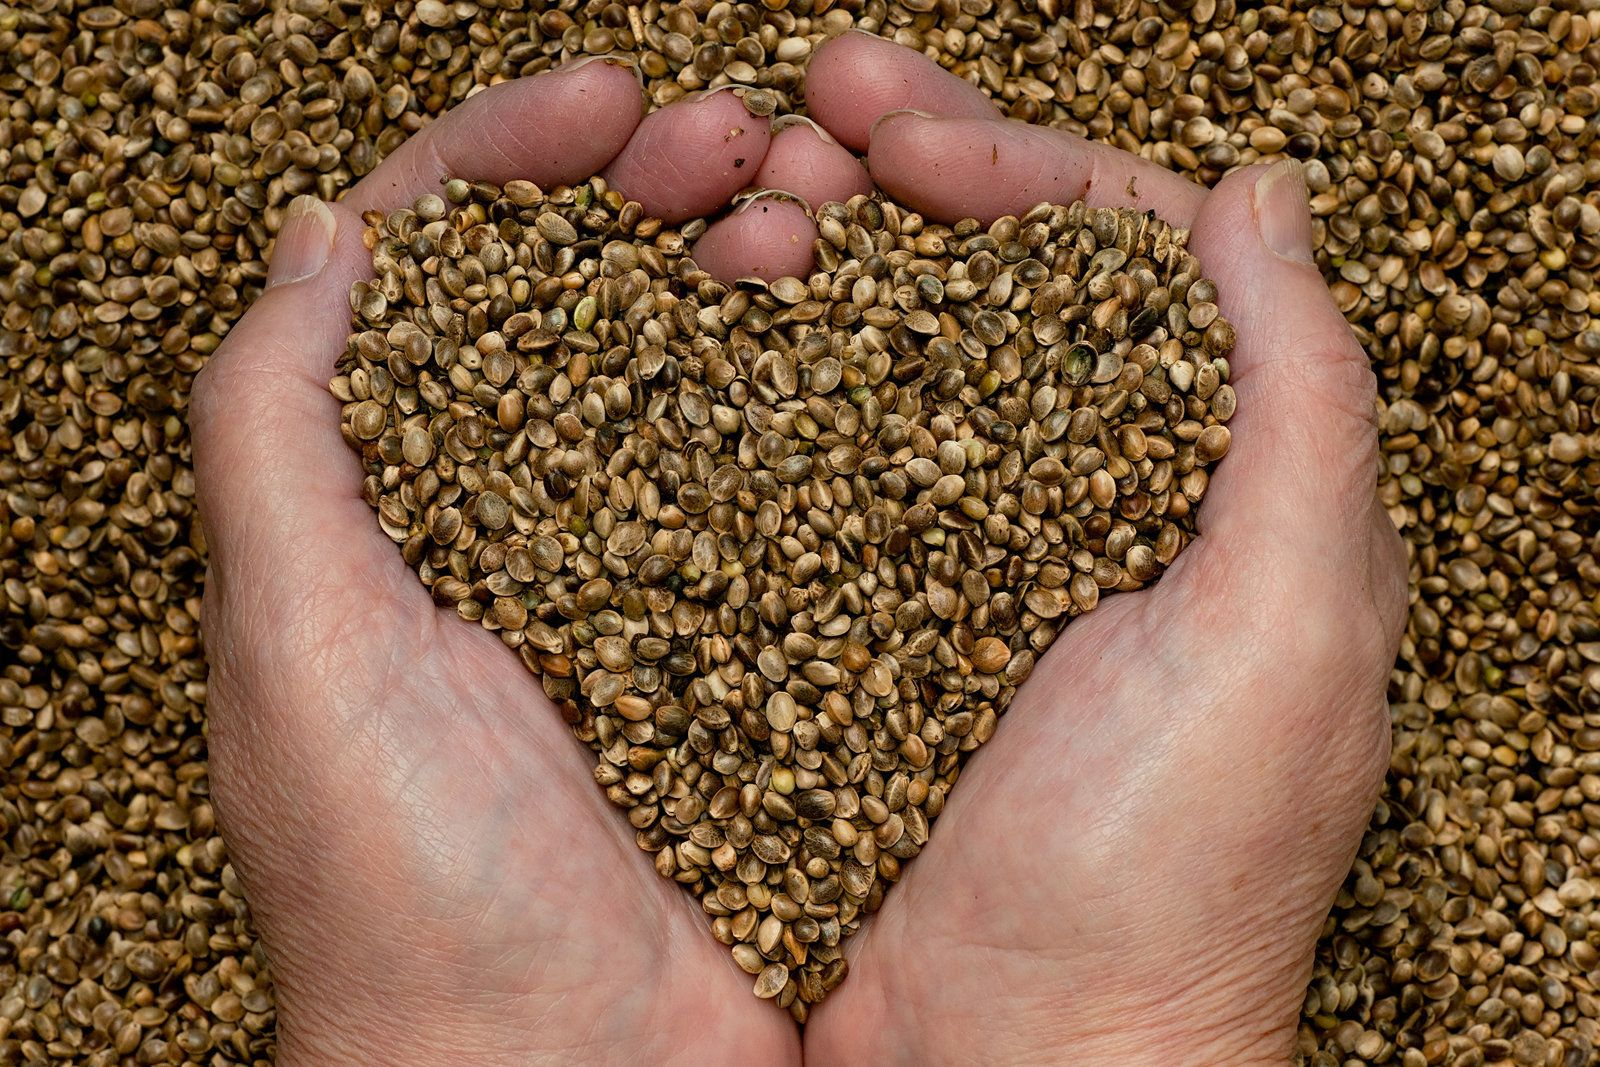 Hemp is not unique in having all the essential amino acids in its embryonic seed. Flax seeds also contain all the essential amino acids as do many other seeds in the plant kingdom. What is unique about hemp seed protein is that 65��0of it is globulin edistin. That is the highest in the plant kingdom.